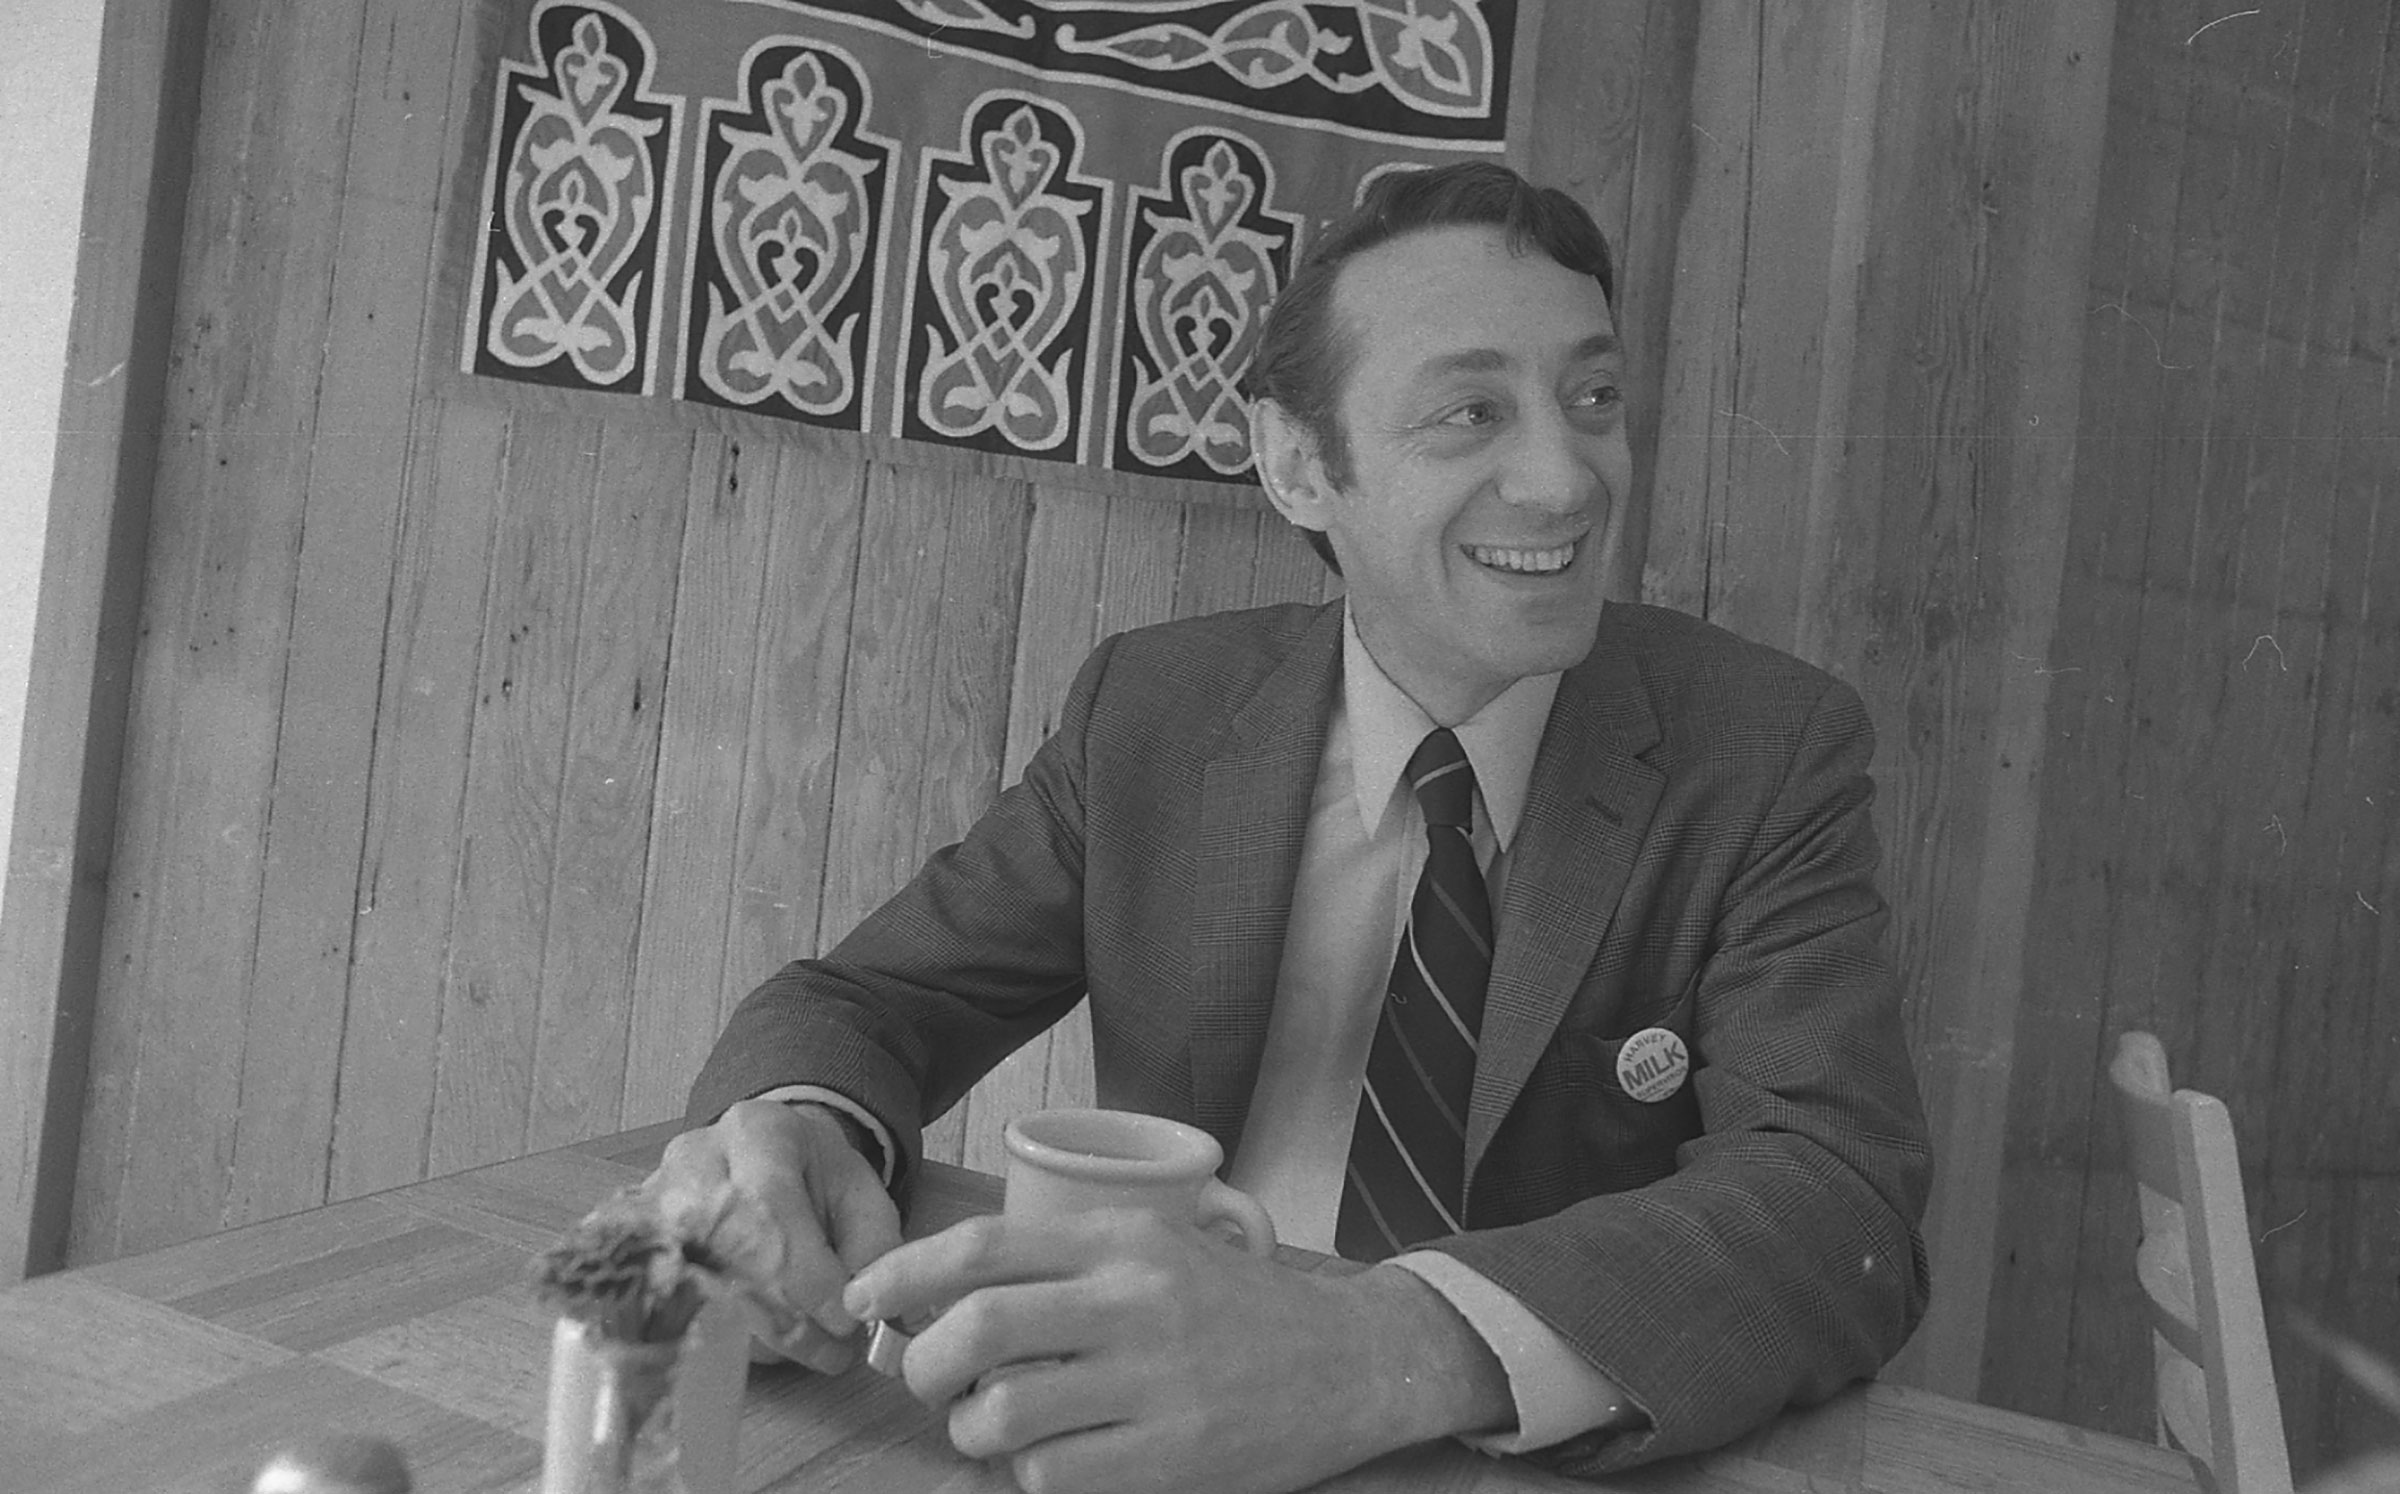 Harvey Milk during his campaign for S.F. Supervisor in 1975.